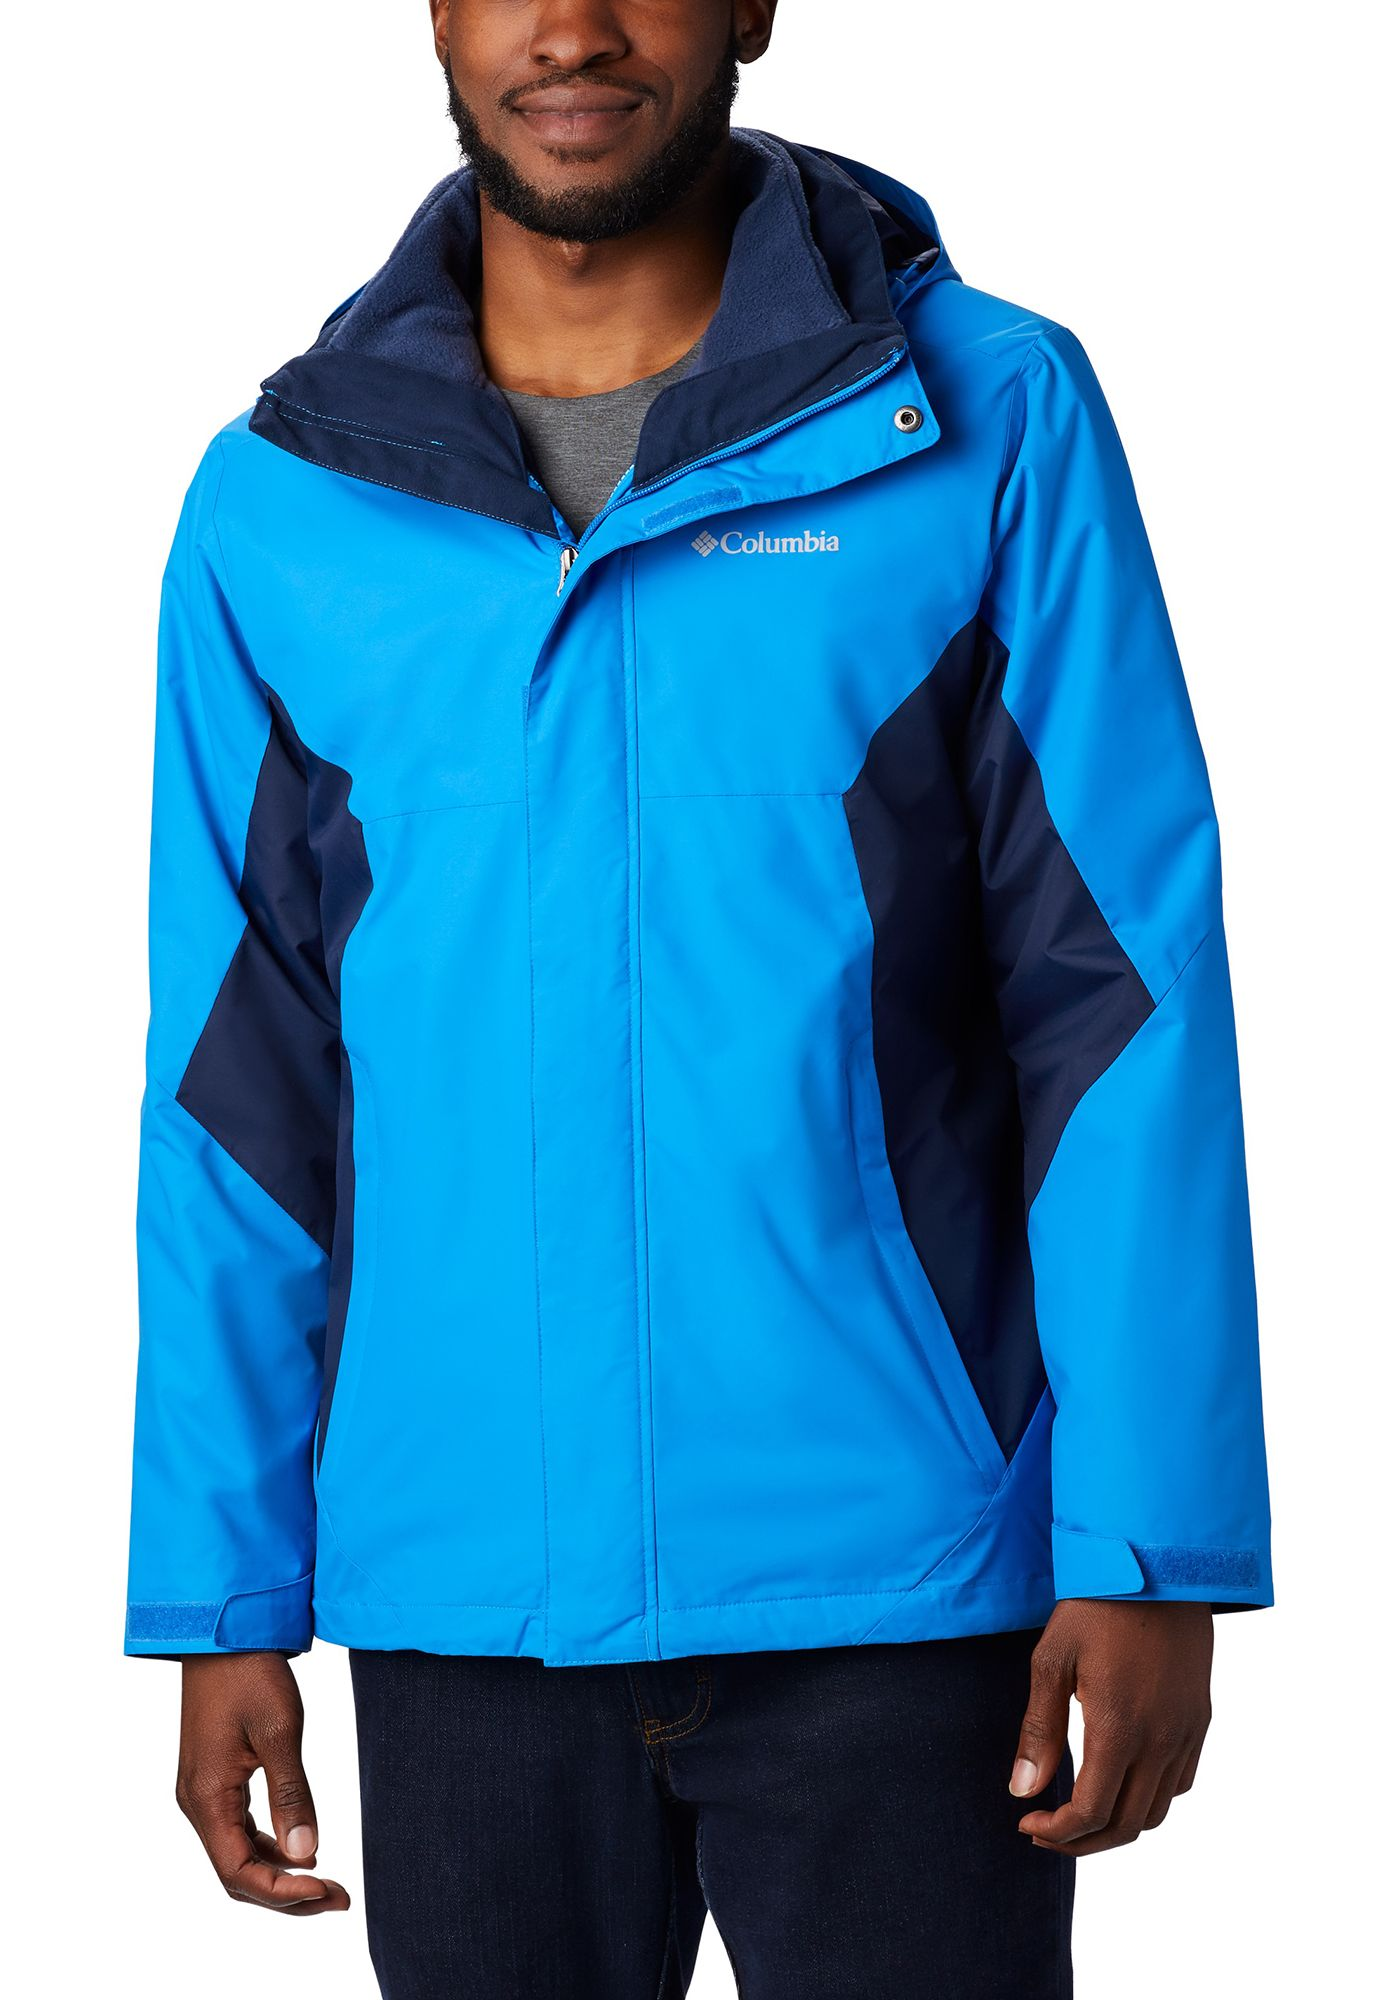 Columbia Men's Eager Air Interchange Jacket (Regular and Big & Tall)